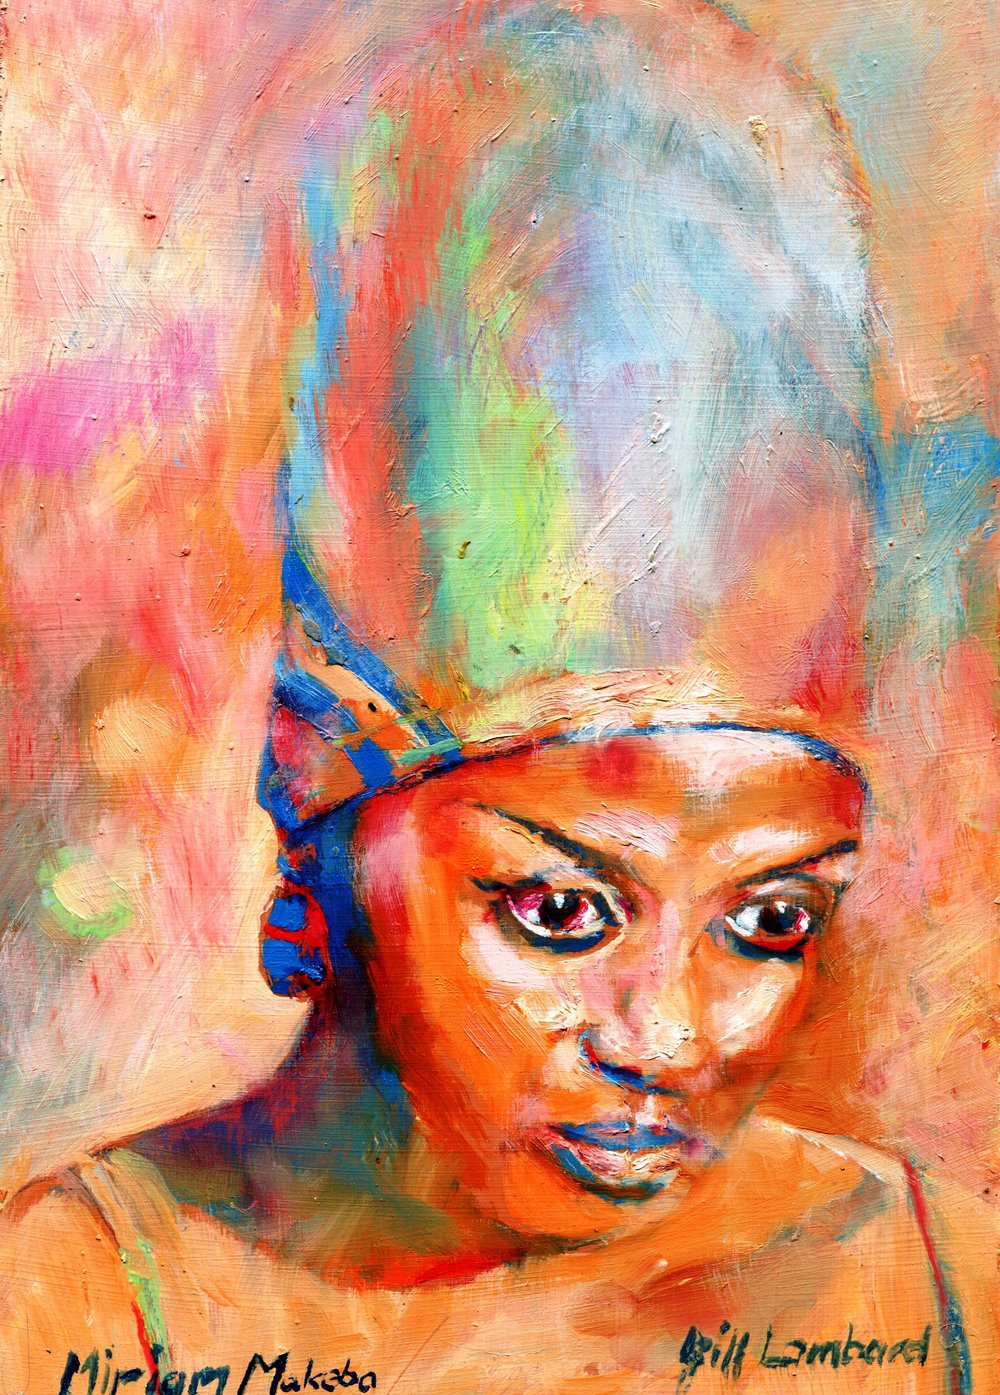 26A BILL LOMBARD, MIRIAM MAKEBA, OIL ON BOARD